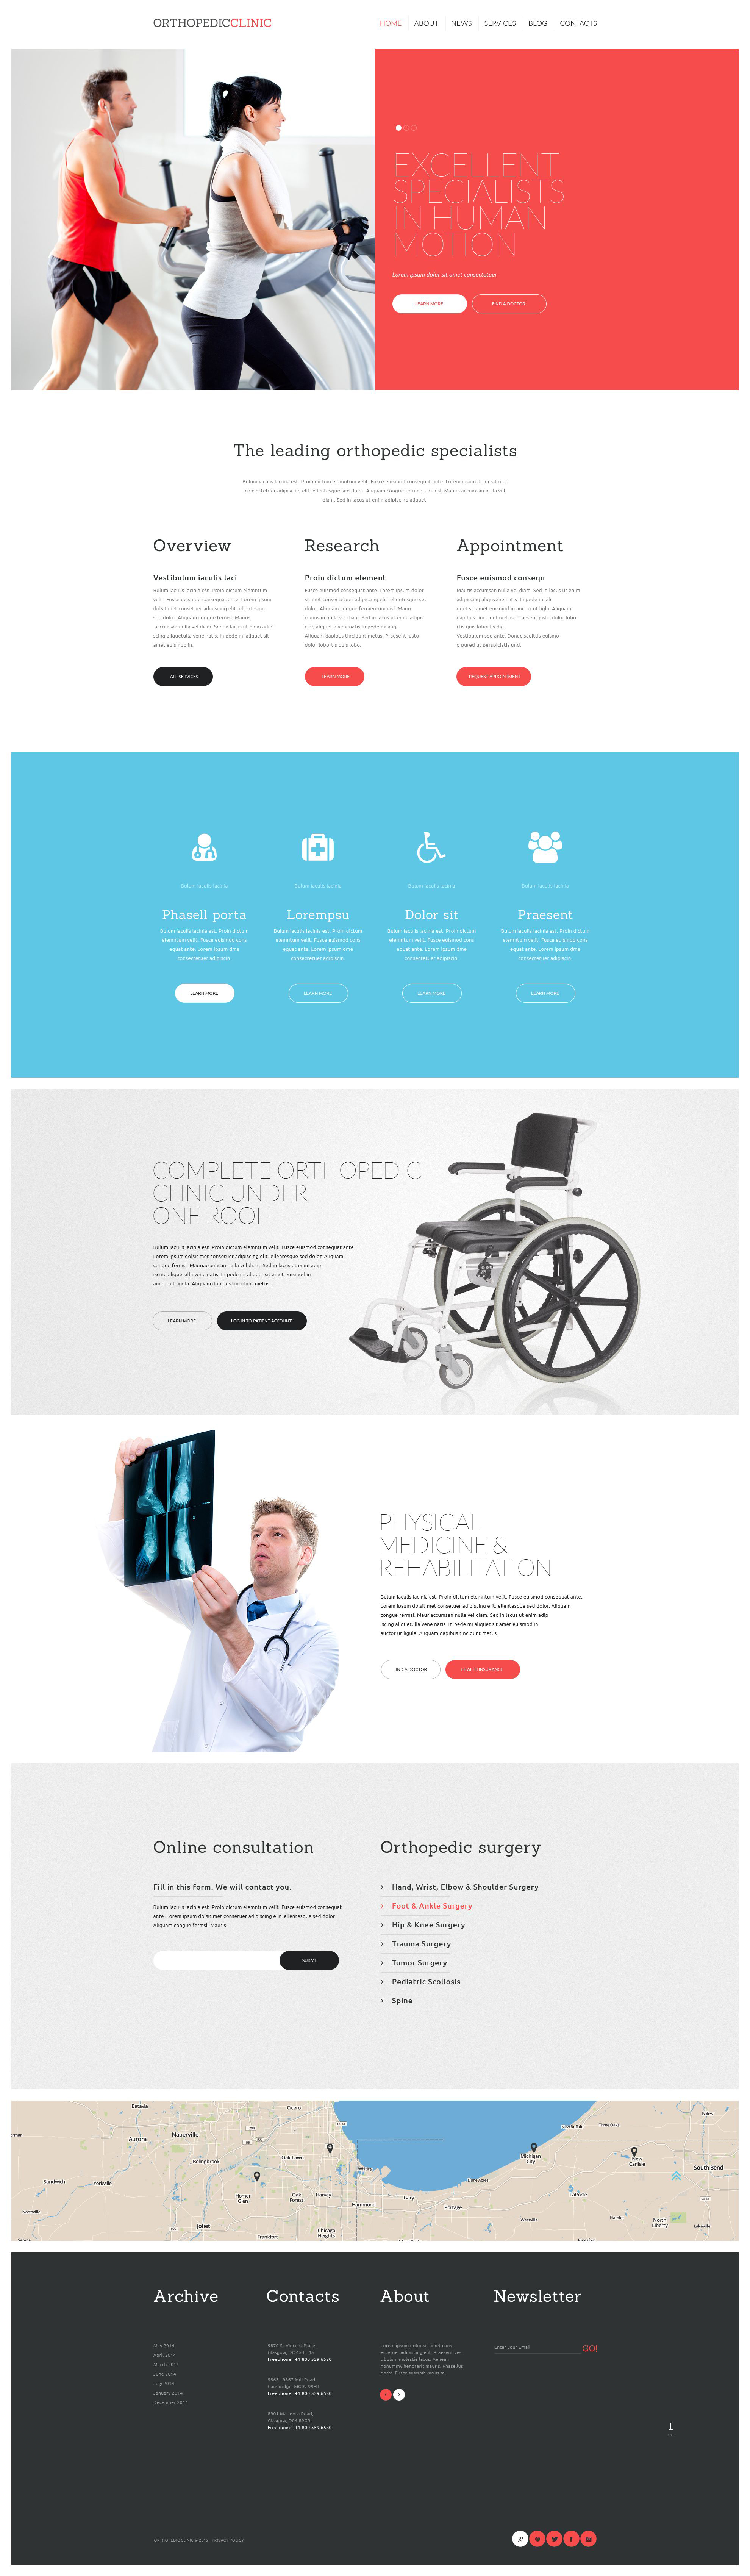 The Orthopedic Medical Center Responsive Javascript Animated Design 53703, one of the best website templates of its kind (medical, most popular), also known as orthopedic medical center website template, medical clinic website template, doctor website template, services website template, client website template, testimonials website template, body website template, help website template, inspection website template, equipment website template, patients website template, medicine website template, healthcare website template, surgery website template, science website template, laboratory website template, drugs website template, pills website template, nurse website template, cure website template, vaccine website template, treatment website template, oncology website template, prescription website template, pharmaceutical website template, disease website template, illness website template, vitam and related with orthopedic medical center, medical clinic, doctor, services, client, testimonials, body, help, inspection, equipment, patients, medicine, healthcare, surgery, science, laboratory, drugs, pills, nurse, cure, vaccine, treatment, oncology, prescription, pharmaceutical, disease, illness, vitam, etc.